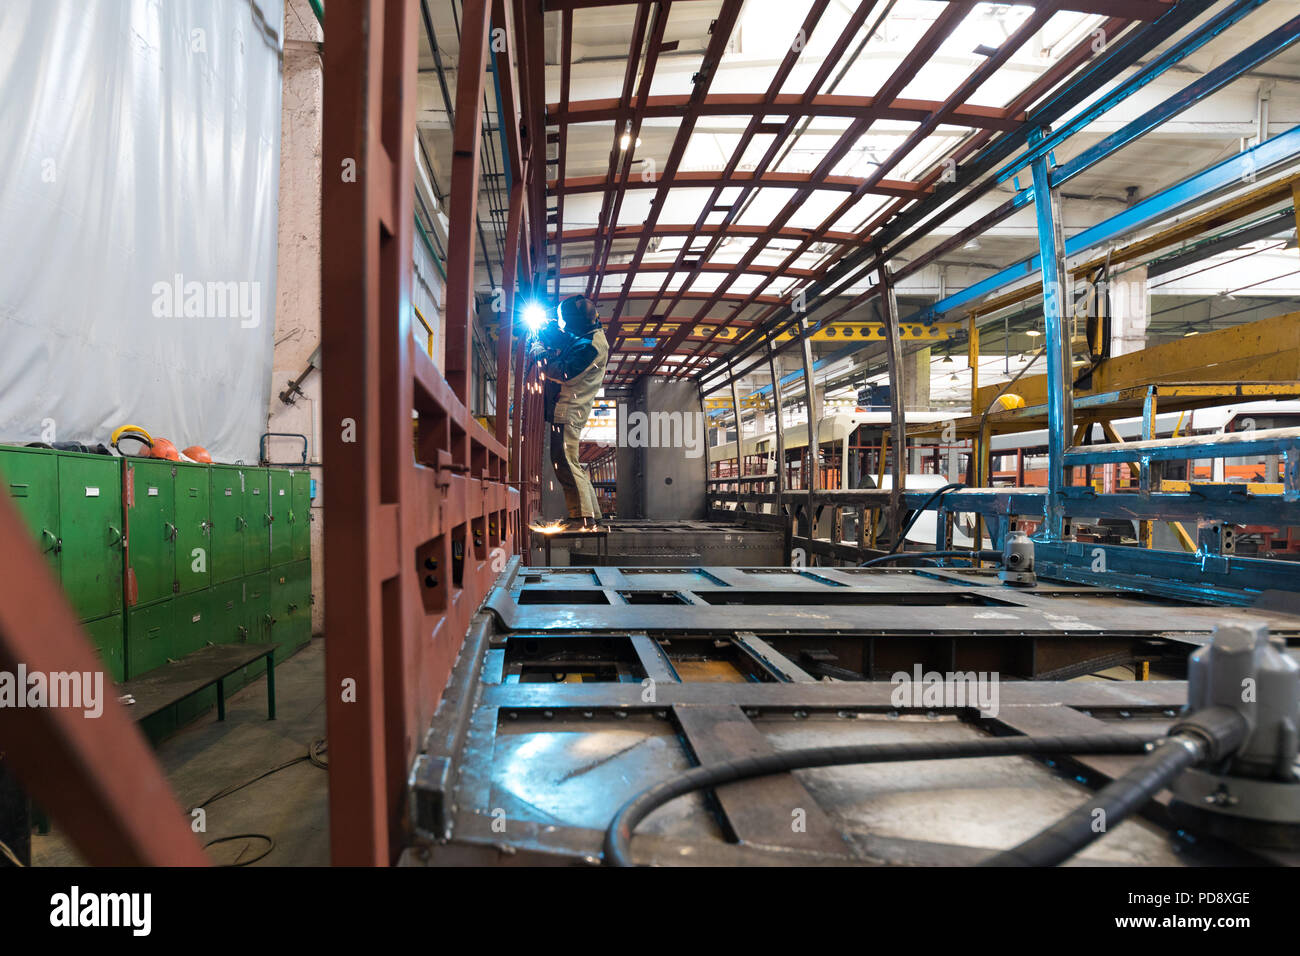 Tram production manufacture Stock Photo